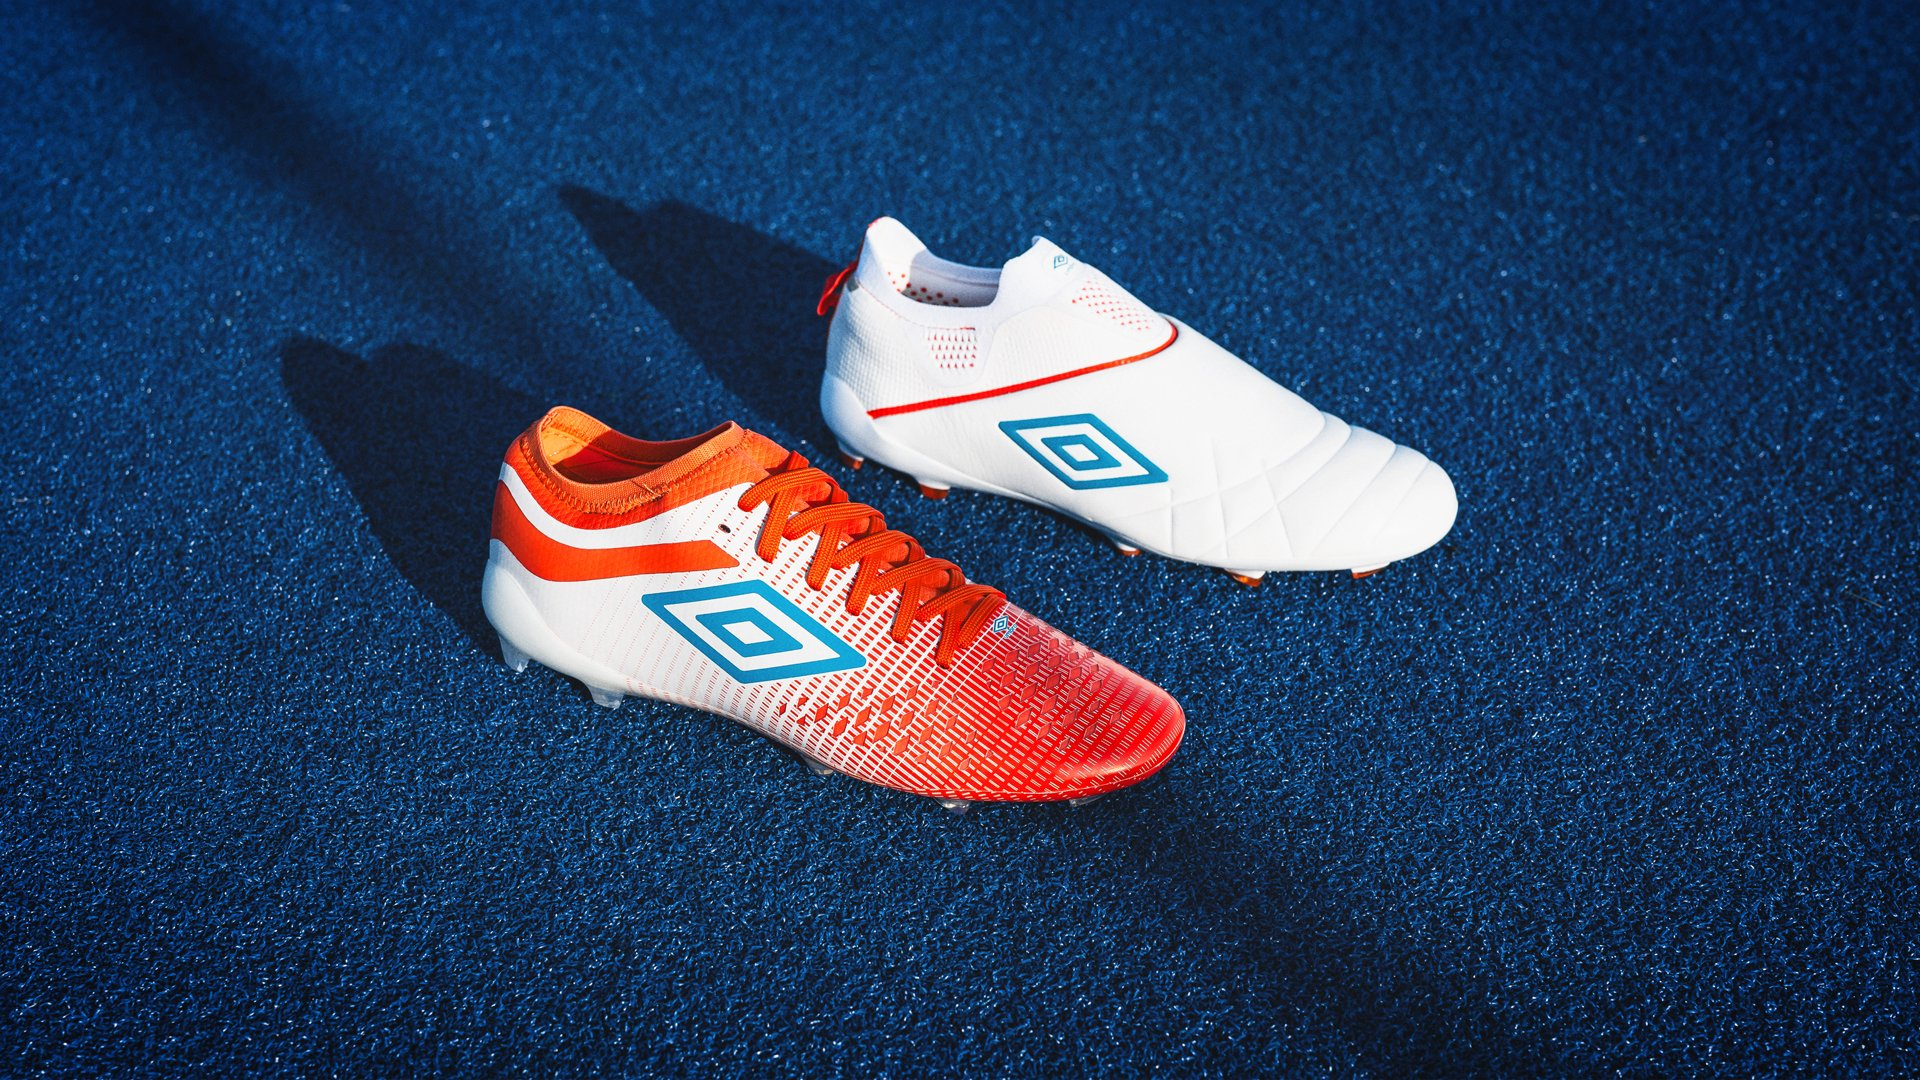 230193c07 New Umbro football boots | Read more about them at Unisport